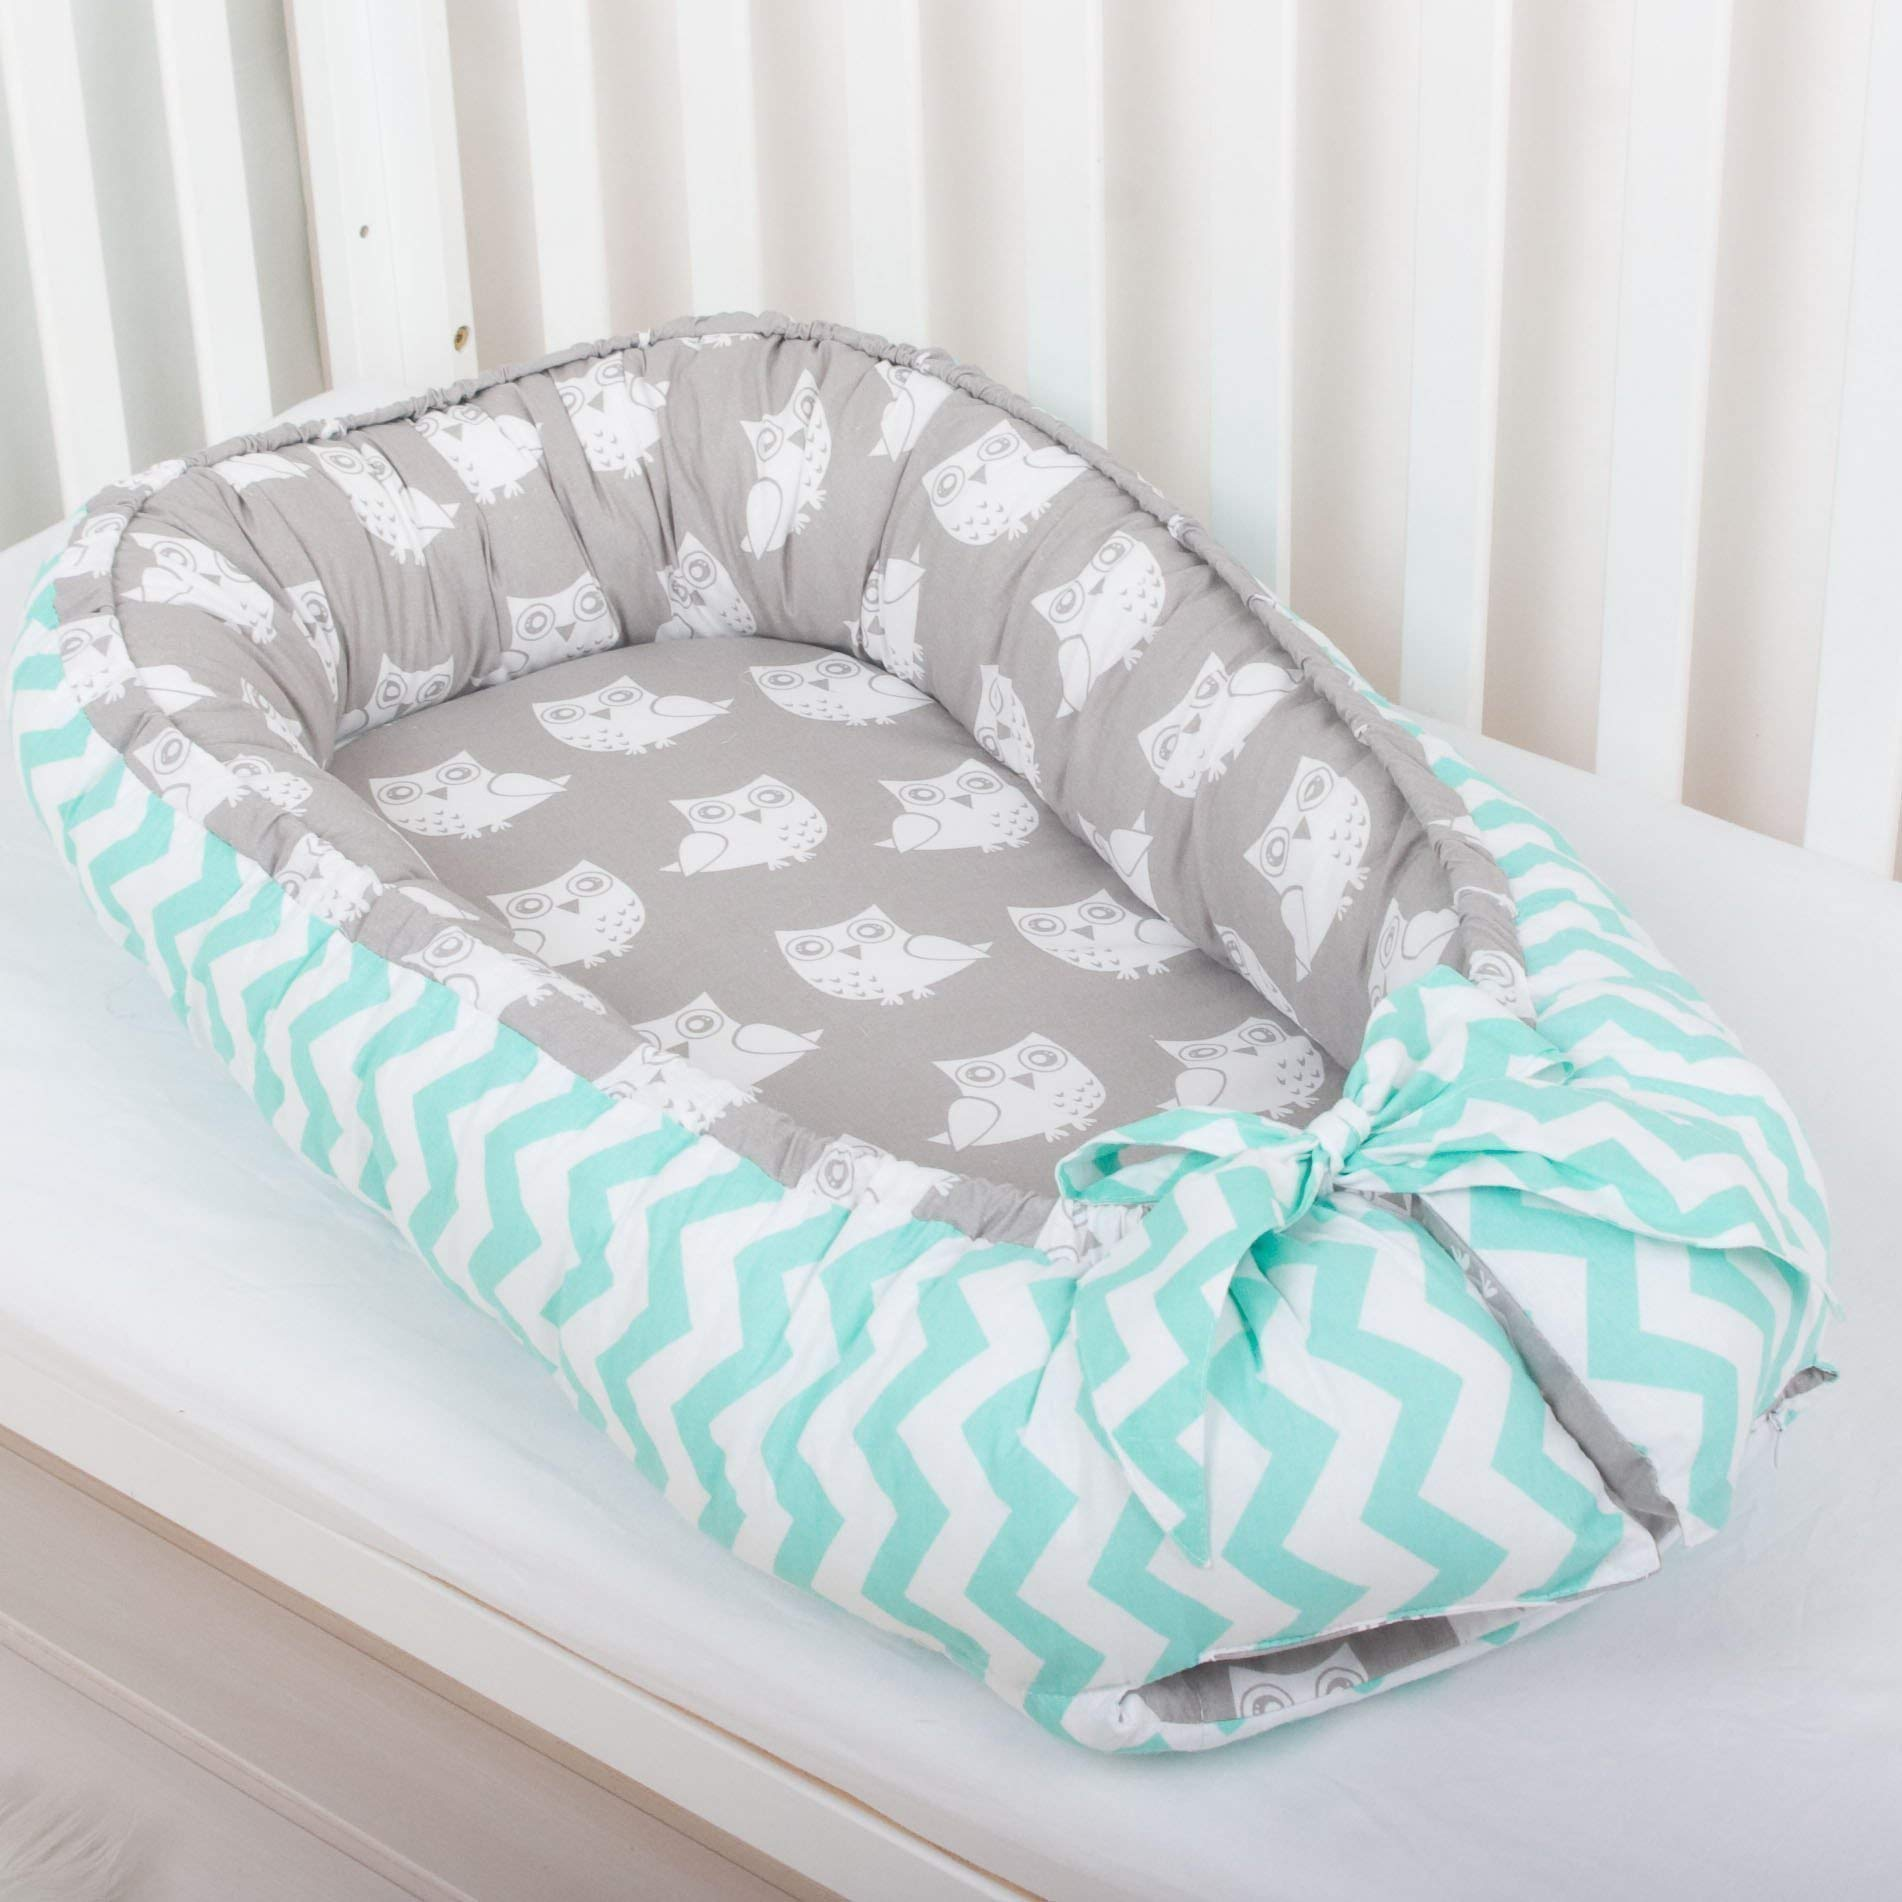 Baby nest bed or toddler size nest, mint and owls, portable crib, co sleeper babynest for newborn and toddlers